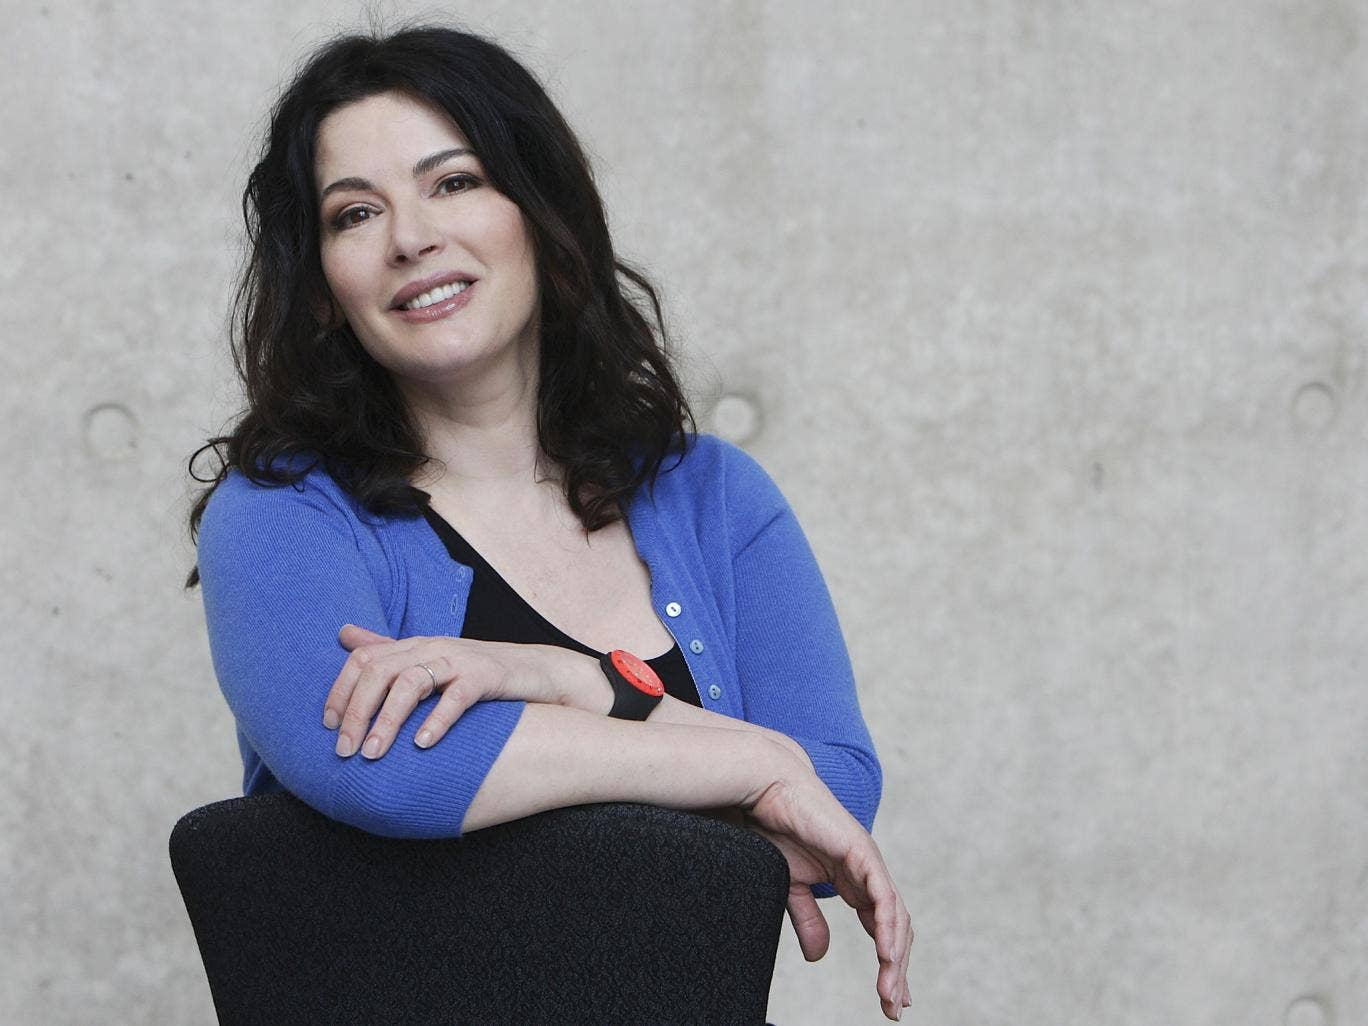 images Nigella Lawson Joins Debate About ControversialConservative Party Redundancy Payouts